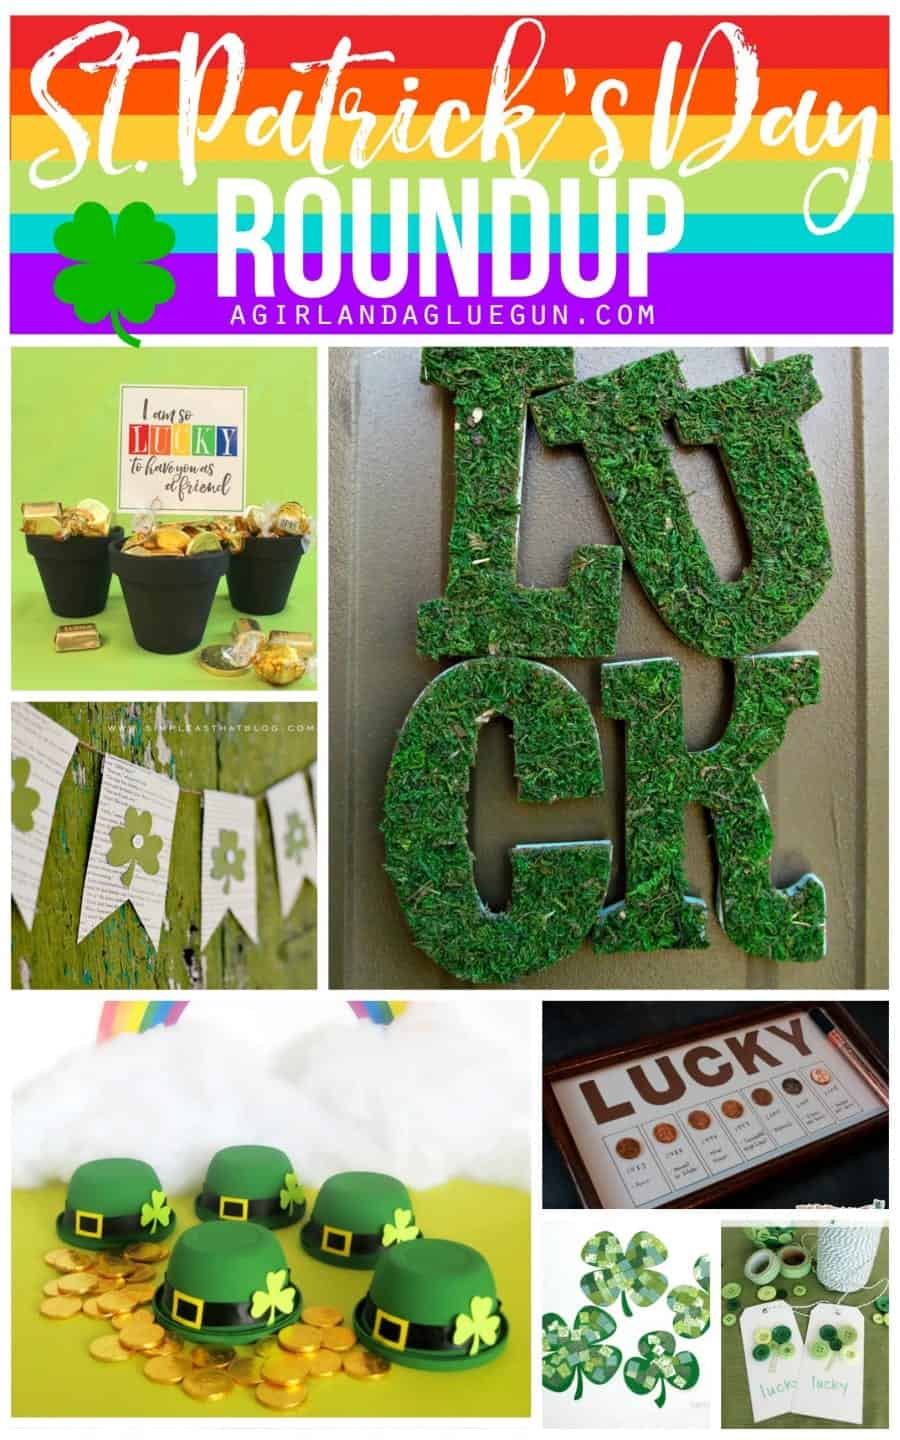 st. Patricks day roundup--lots of fun ideas!